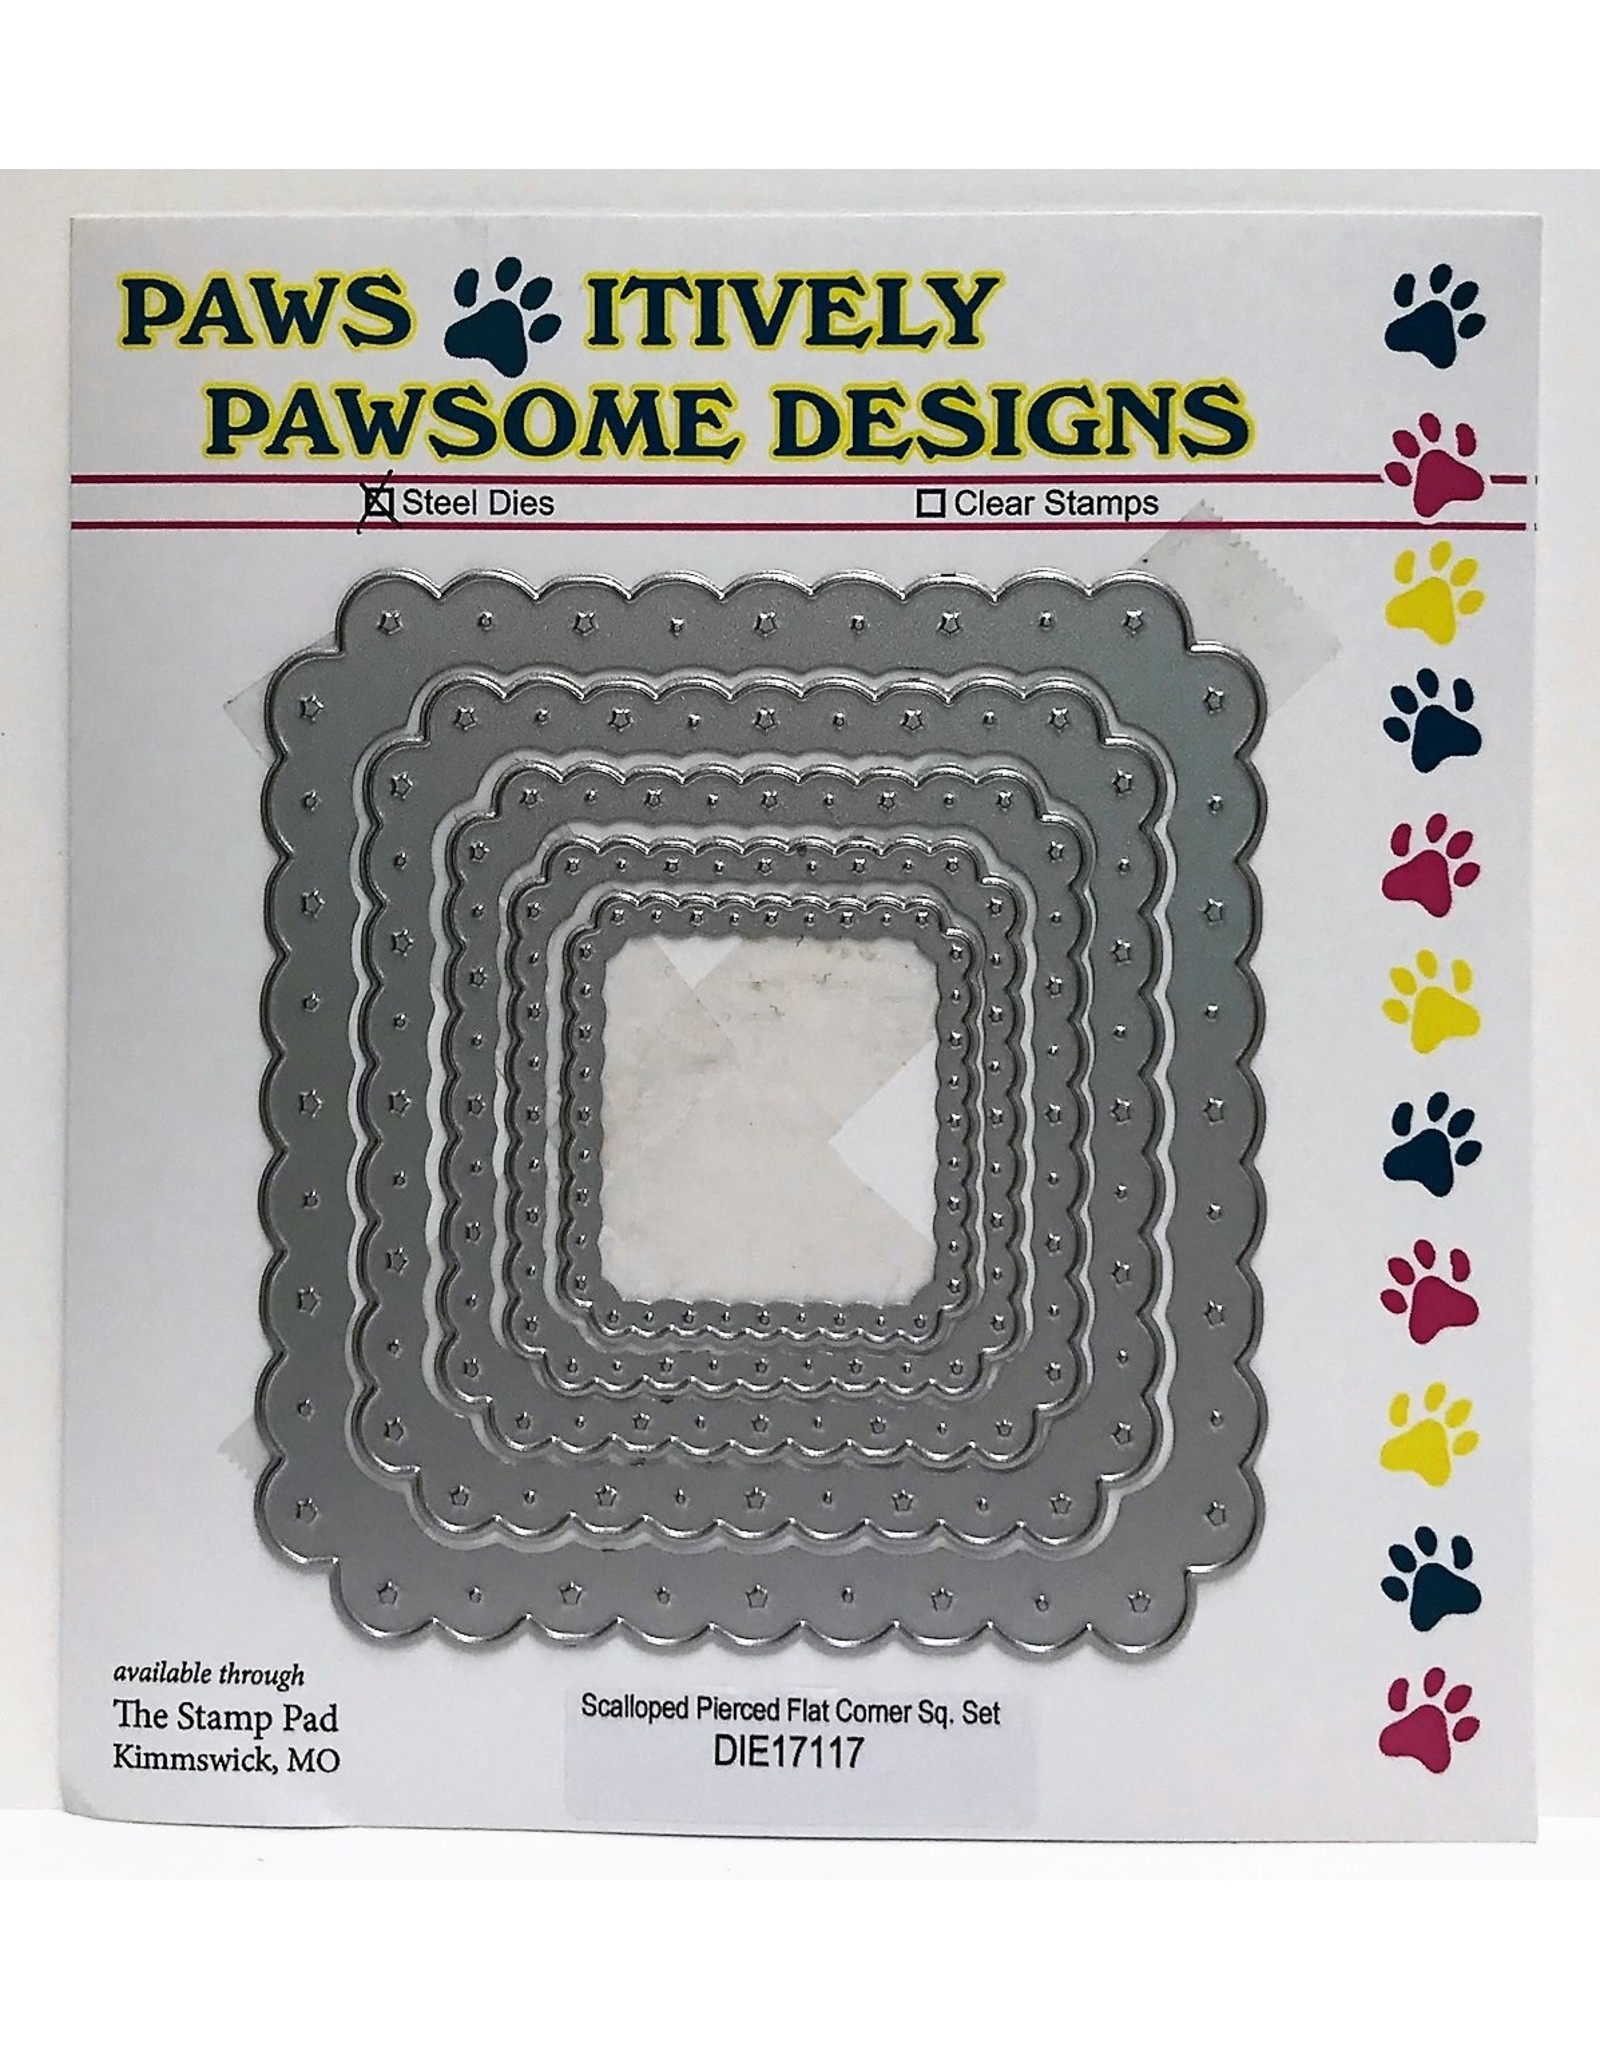 Paws-Itively Pawsome Designs Scalloped Pierced Flat Corner Square Set - Die